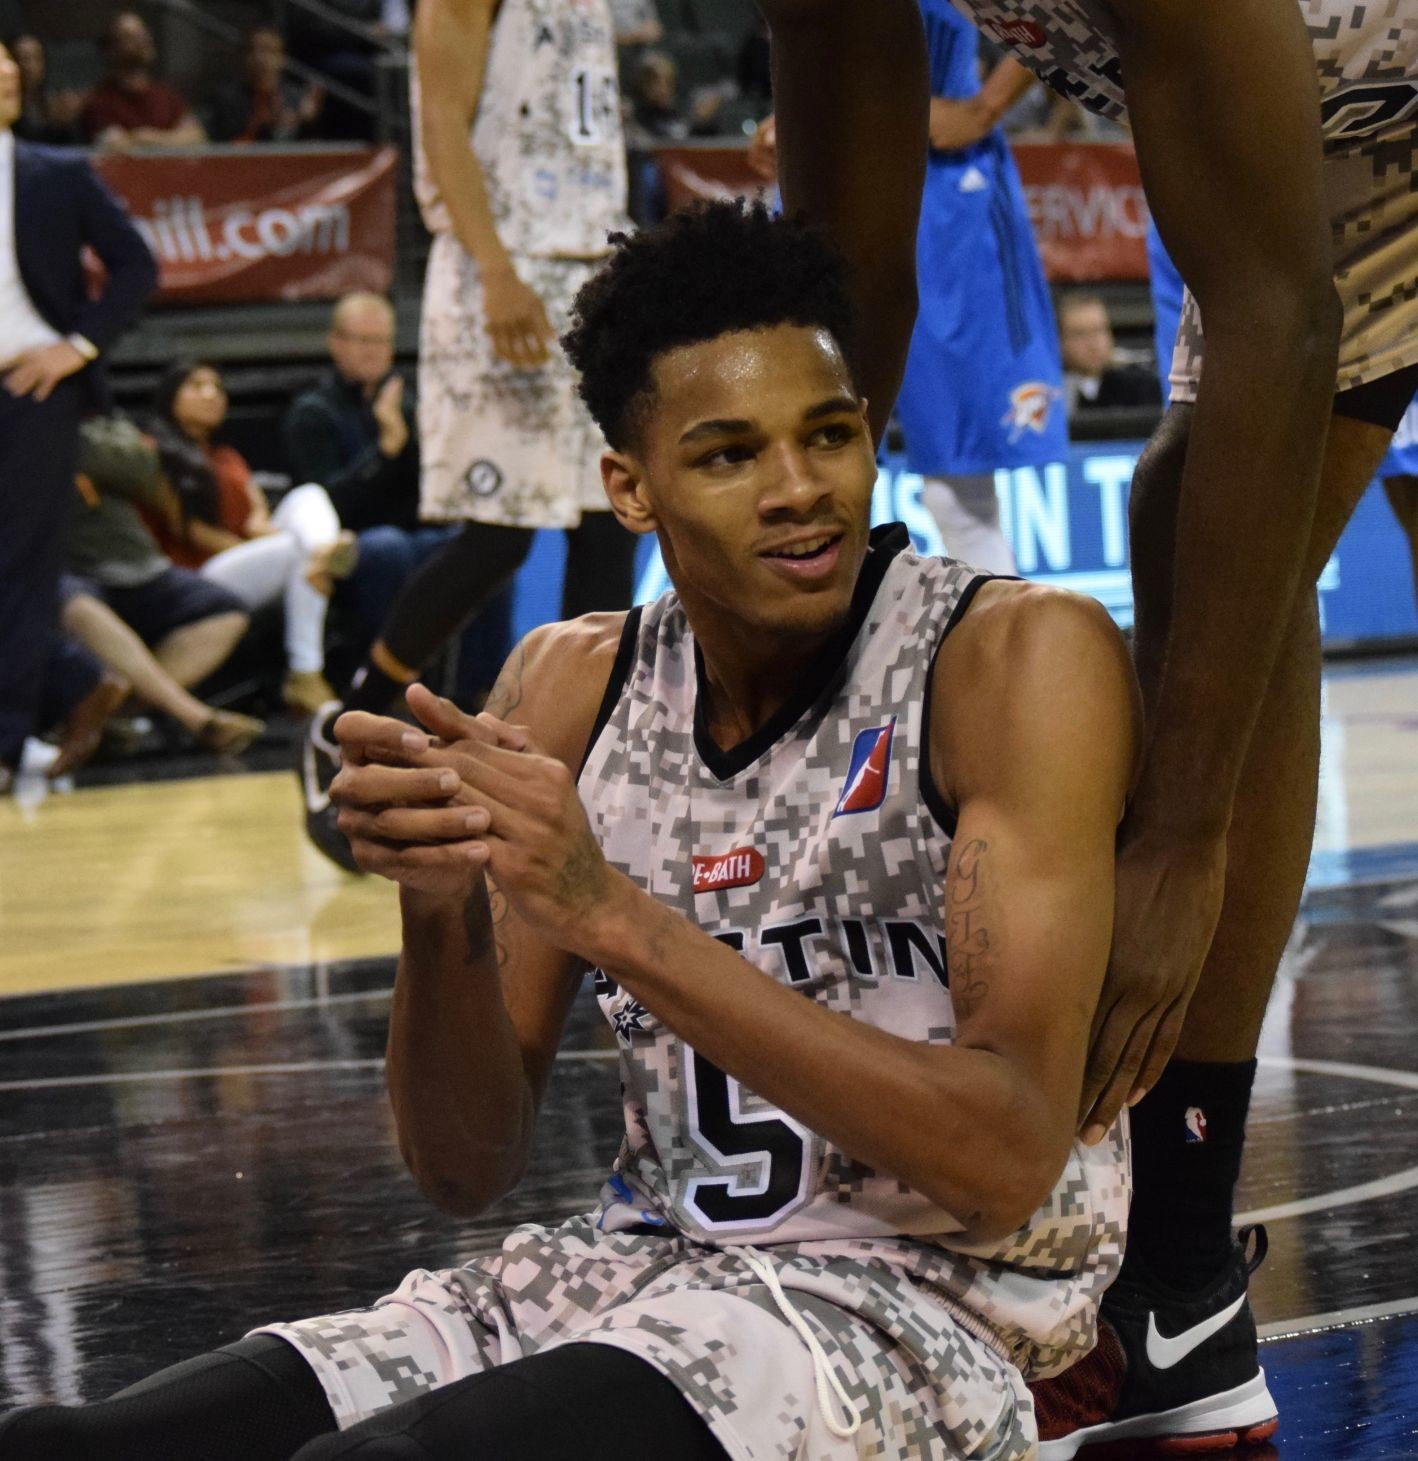 Former San Antonio first-round draft pick Dejonte Murray is one of six players with the Spurs this summer that spent time in Austin during last season.